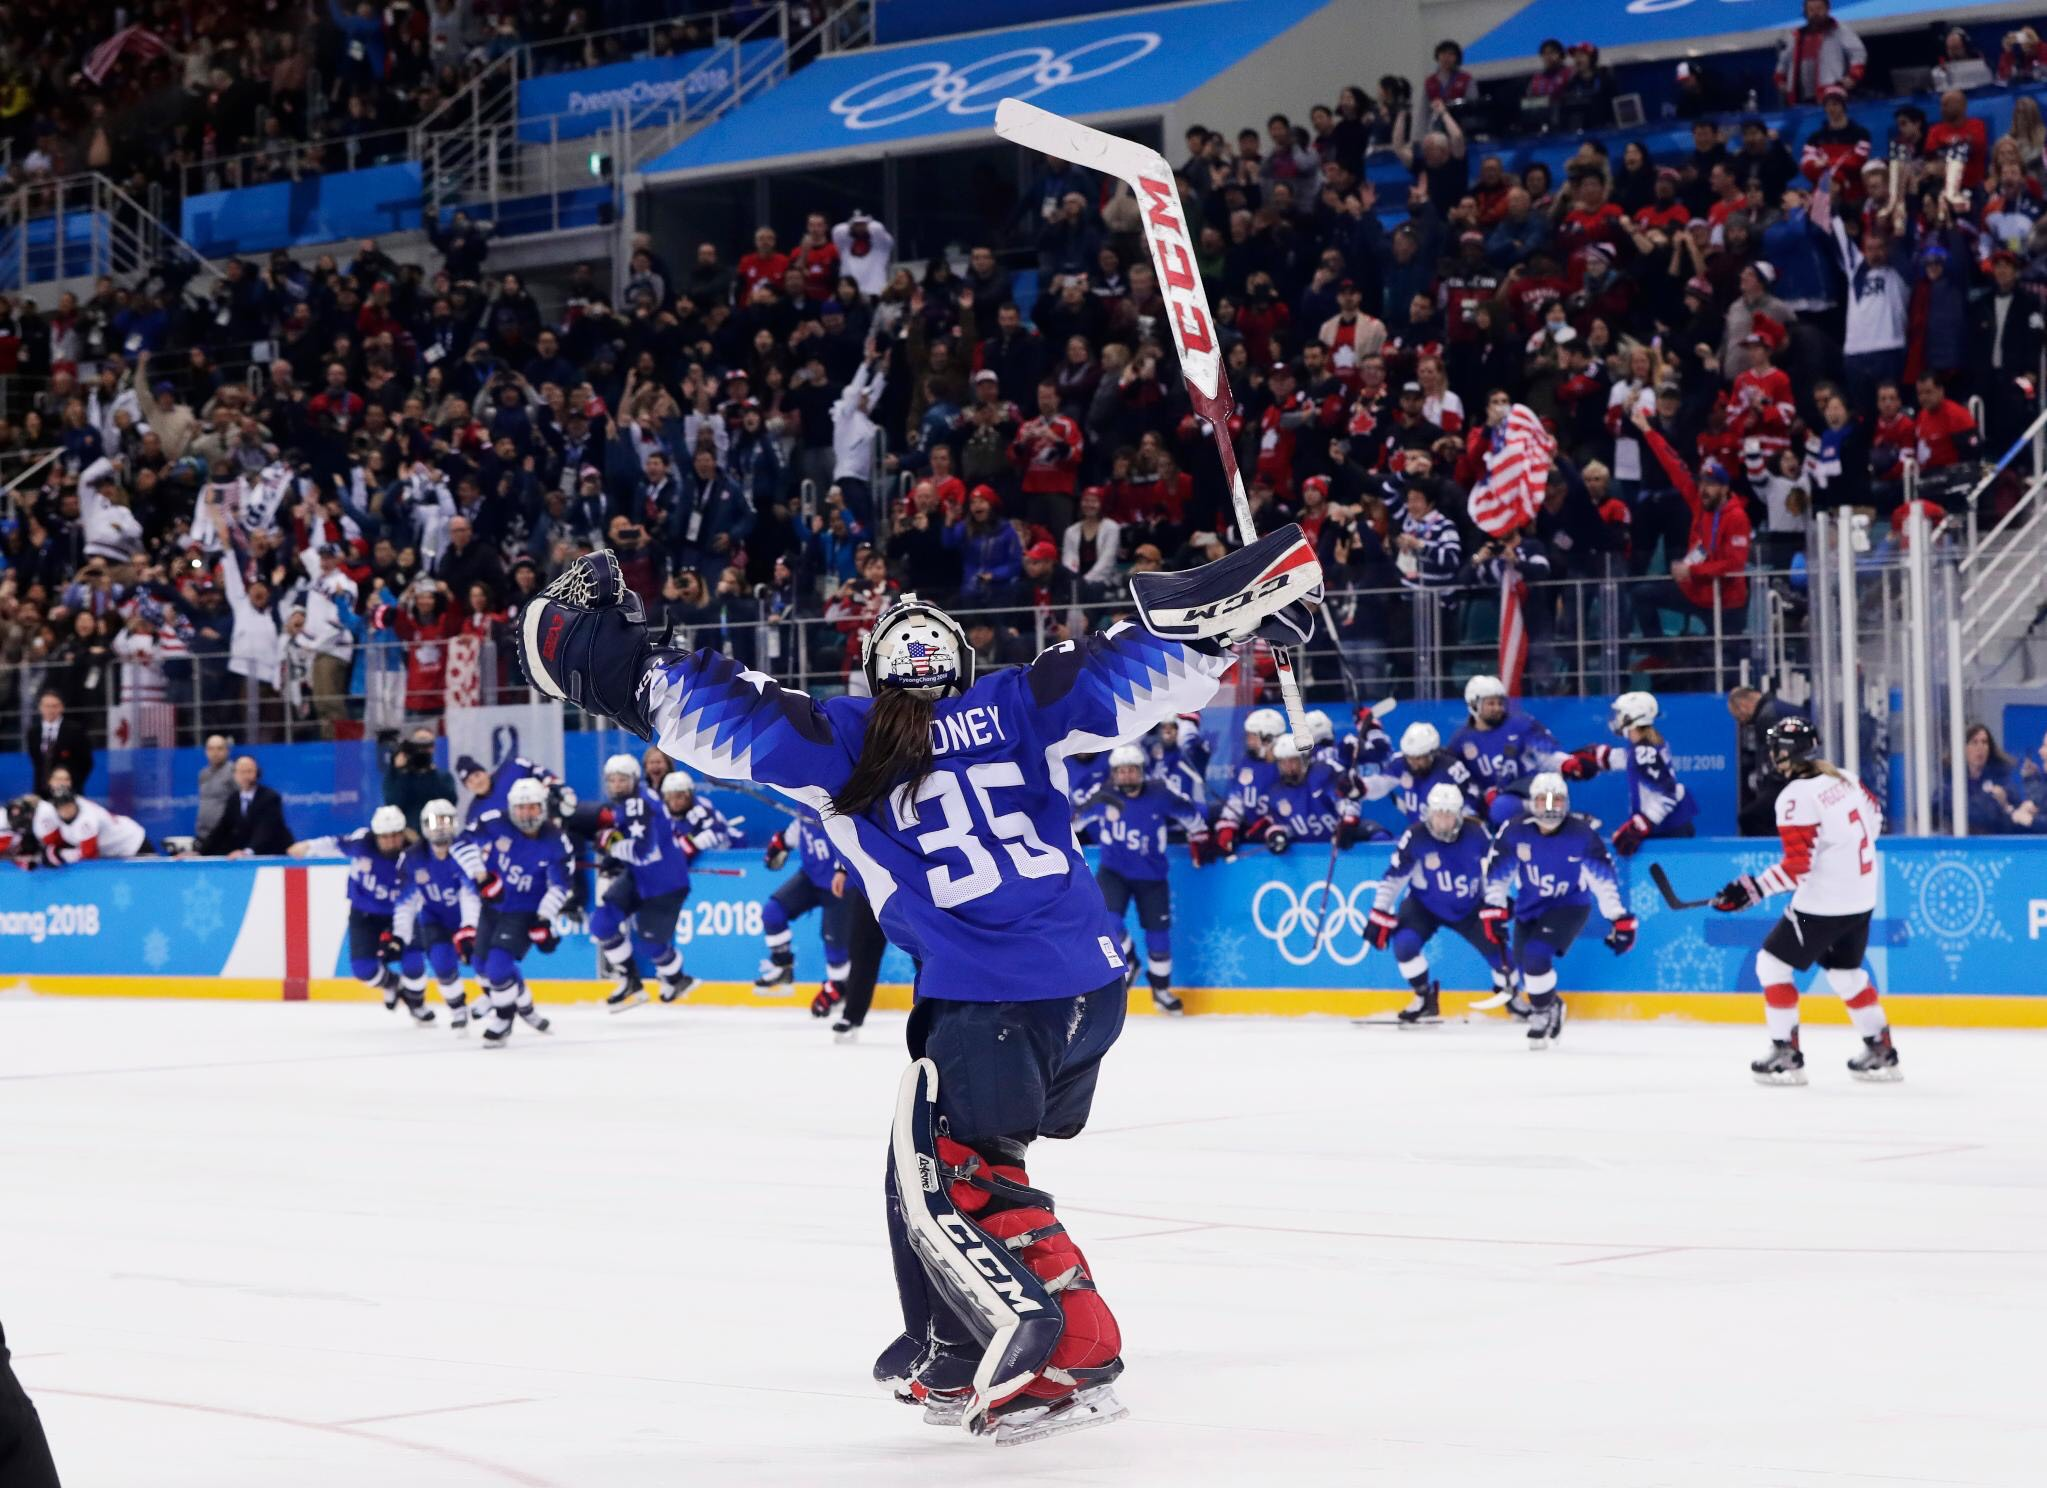 Rooney celebrates winning gold after stopping Canada in a shootout. Photo courtesy of Maddie Rooney